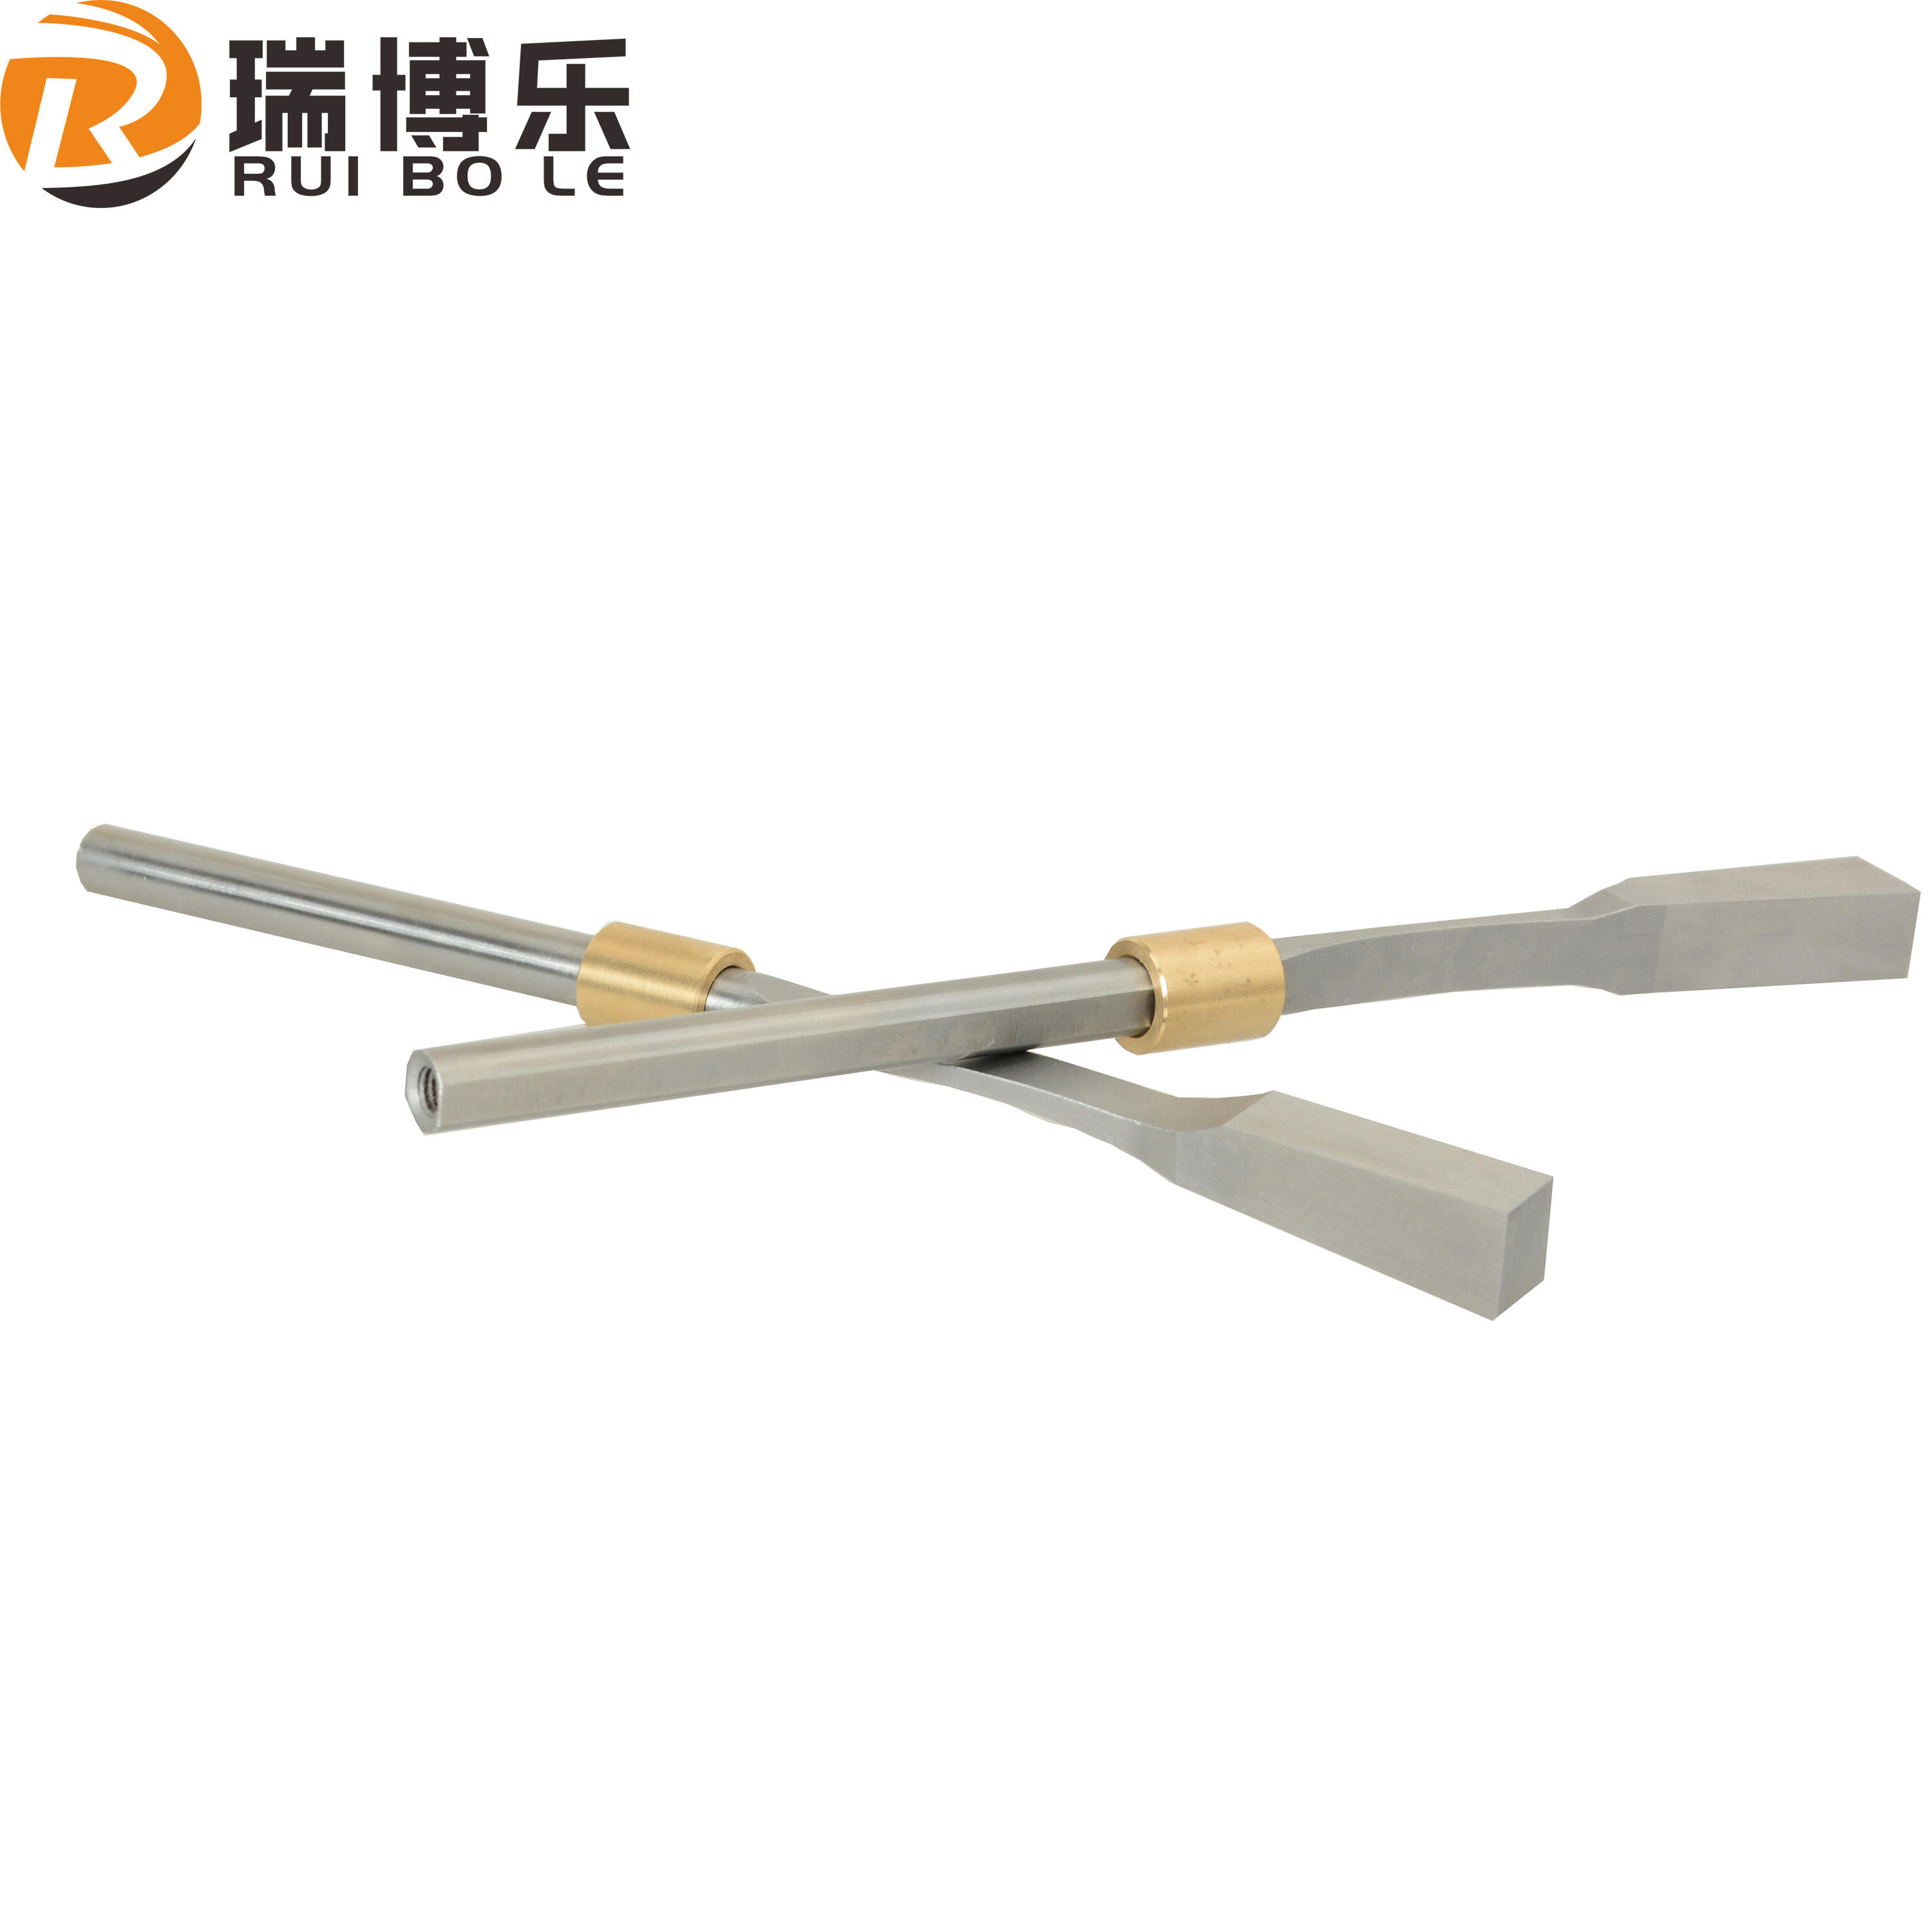 PPW mold eject solution sprung core mechanism